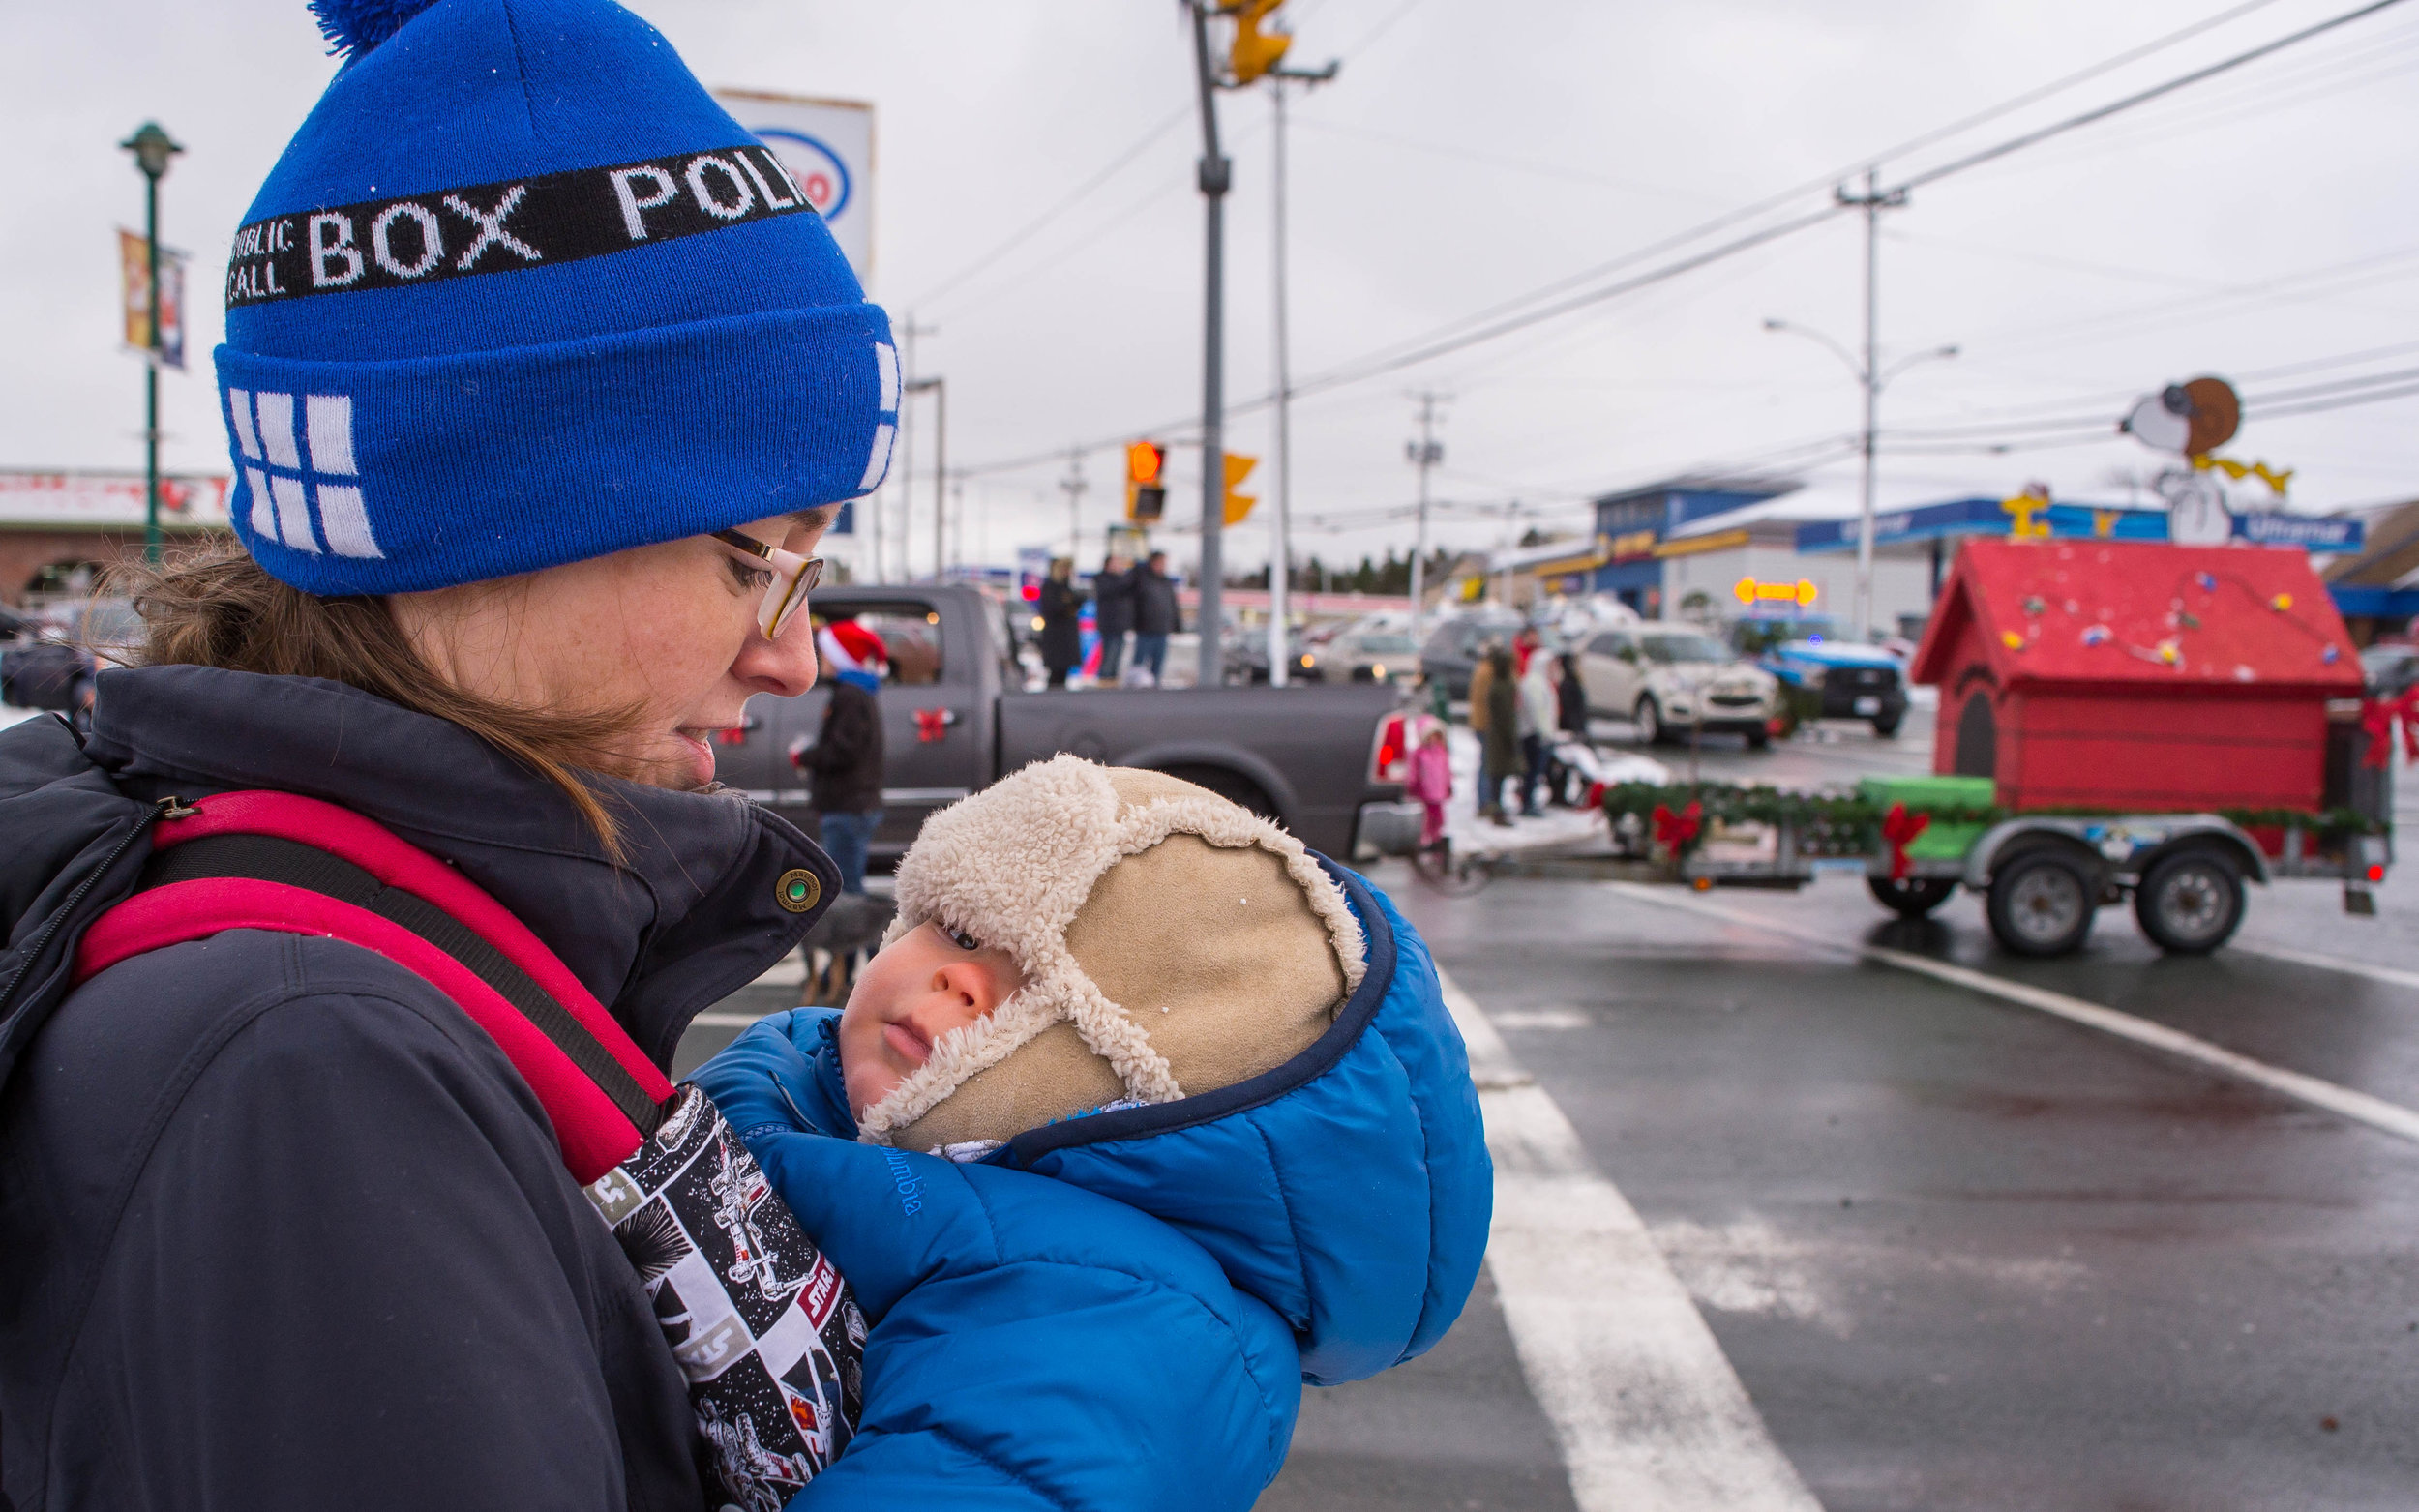 I joined Janet and G for the Mount Pearl Santy Claus parade a few weeks ago. George had a wicked time peeping out from under his lid. It was wicked cold.